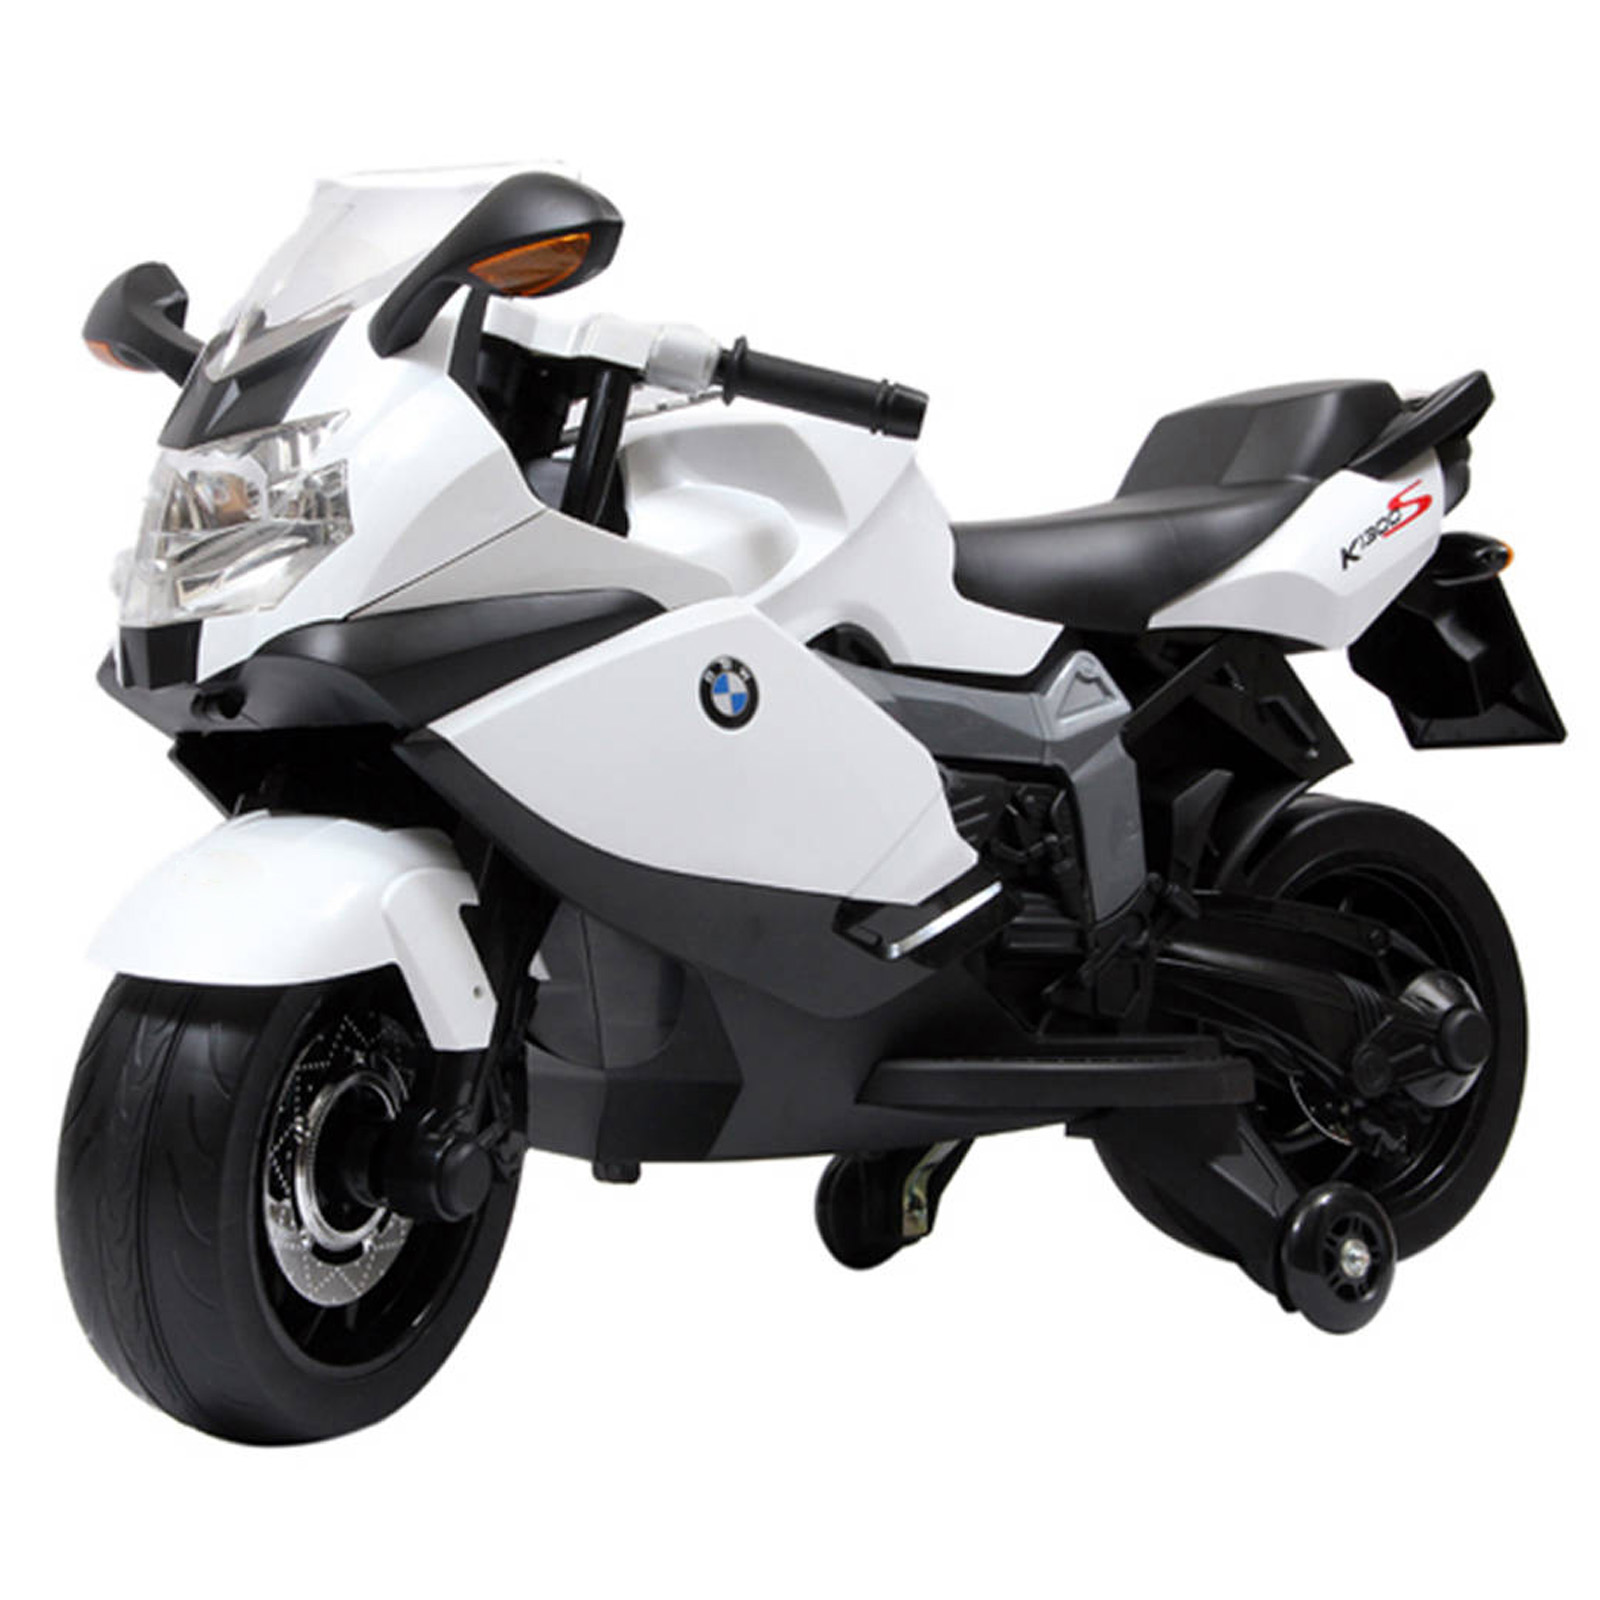 Licensed BMW Motorcycle 12V Kids Battery Powered Ride On ...